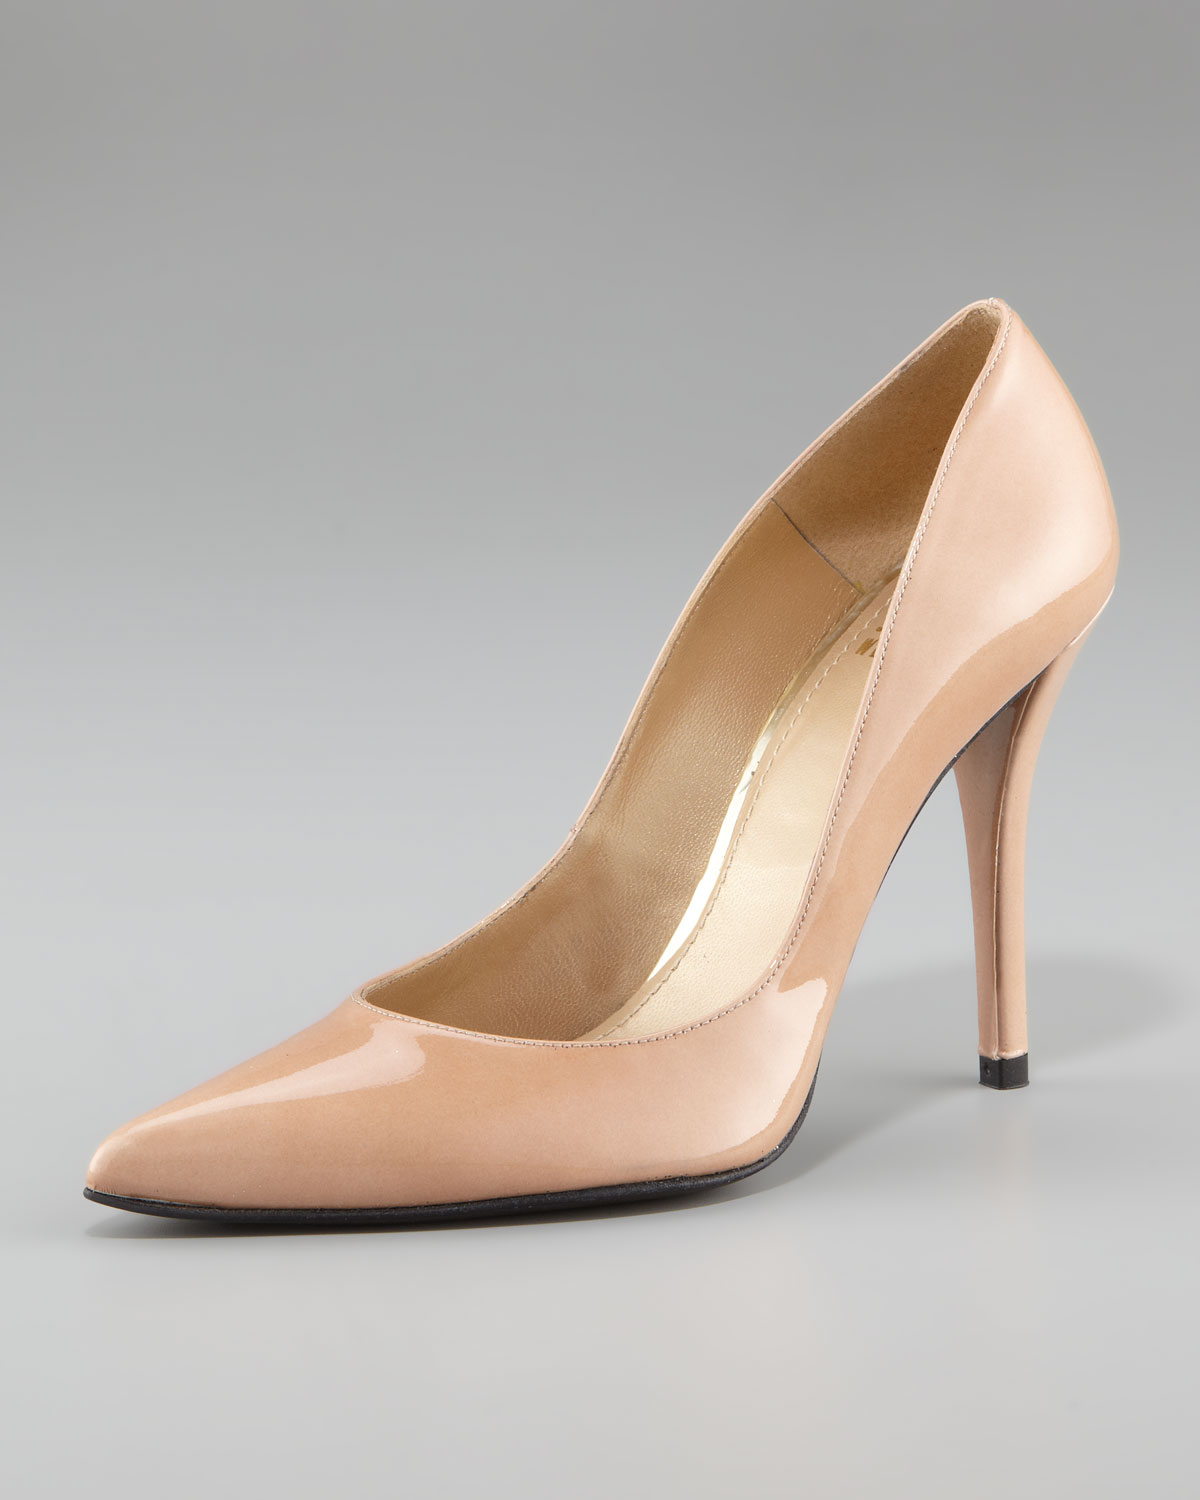 Nude leather pumps #8